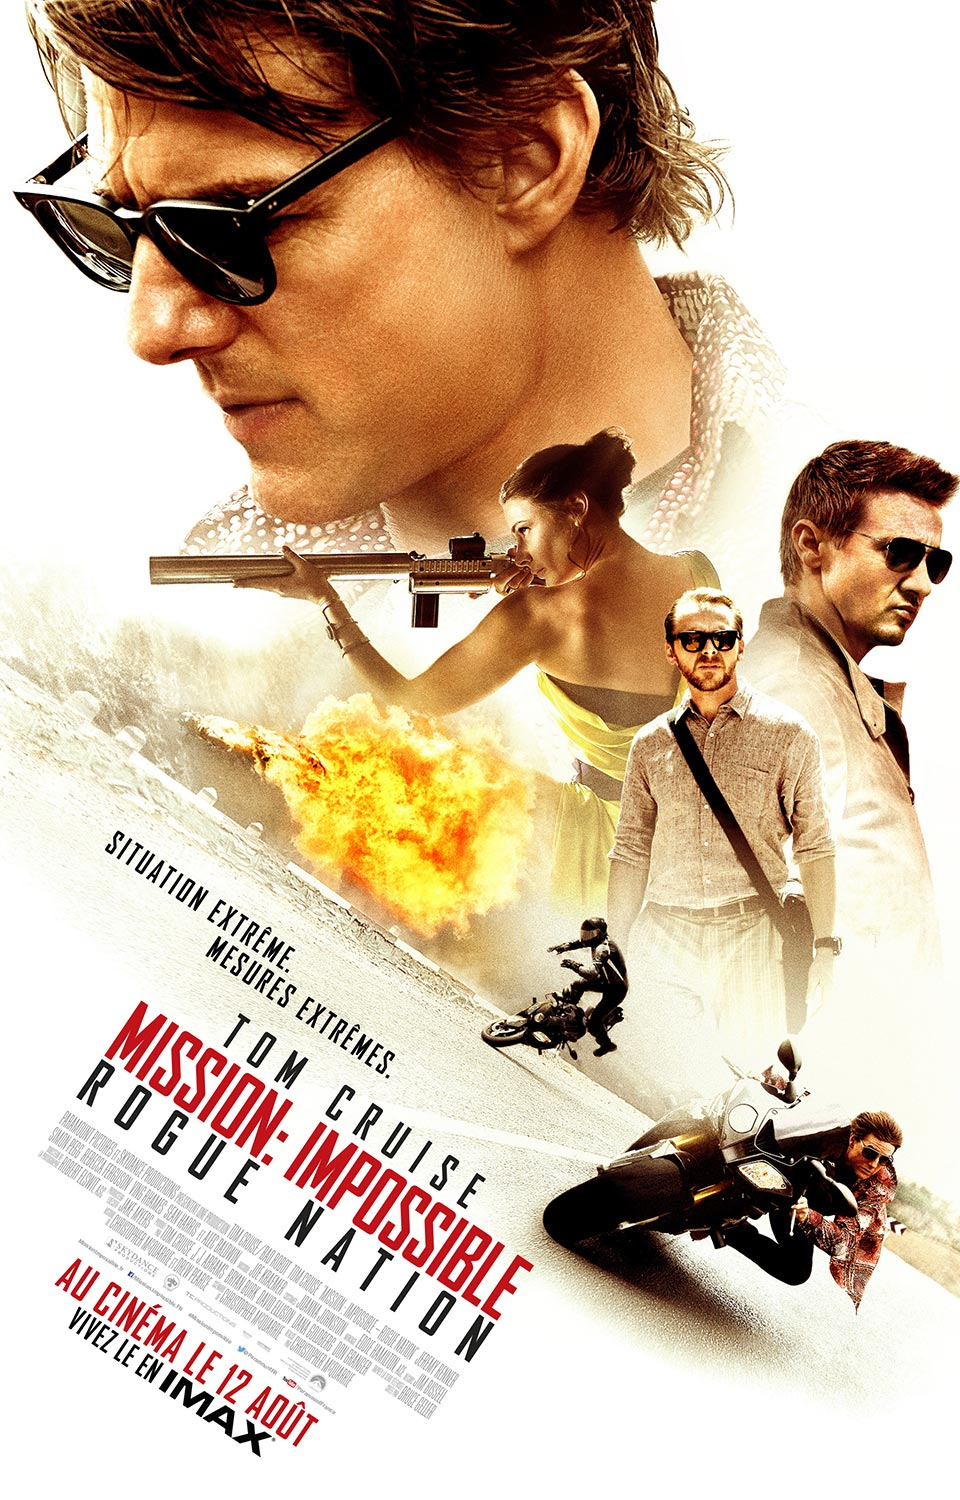 Mission Impossible 5 - Rogue Nation wiflix